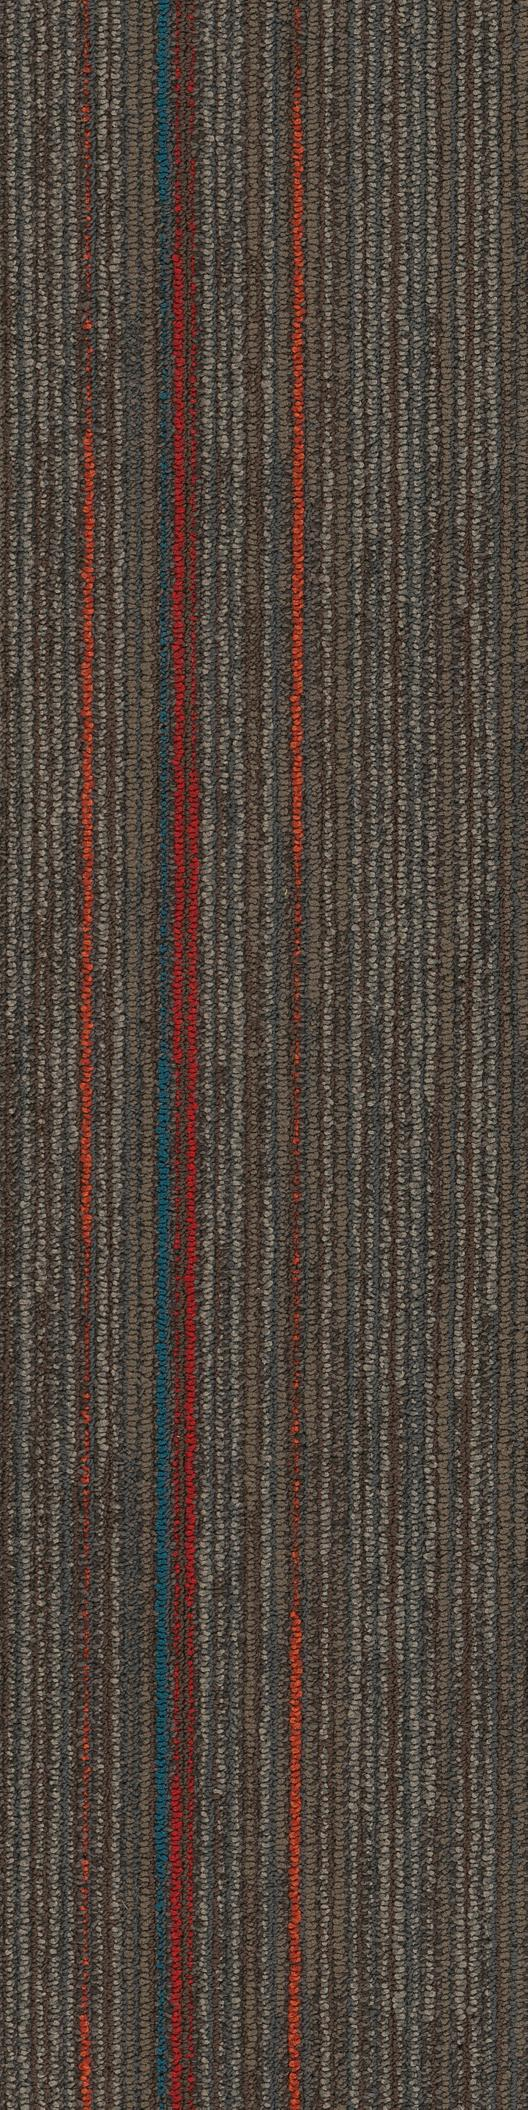 Glitch tile 5t128 shaw contract commercial carpet and flooring glitch tile 5t128 shaw contract commercial carpet and flooring baanklon Choice Image